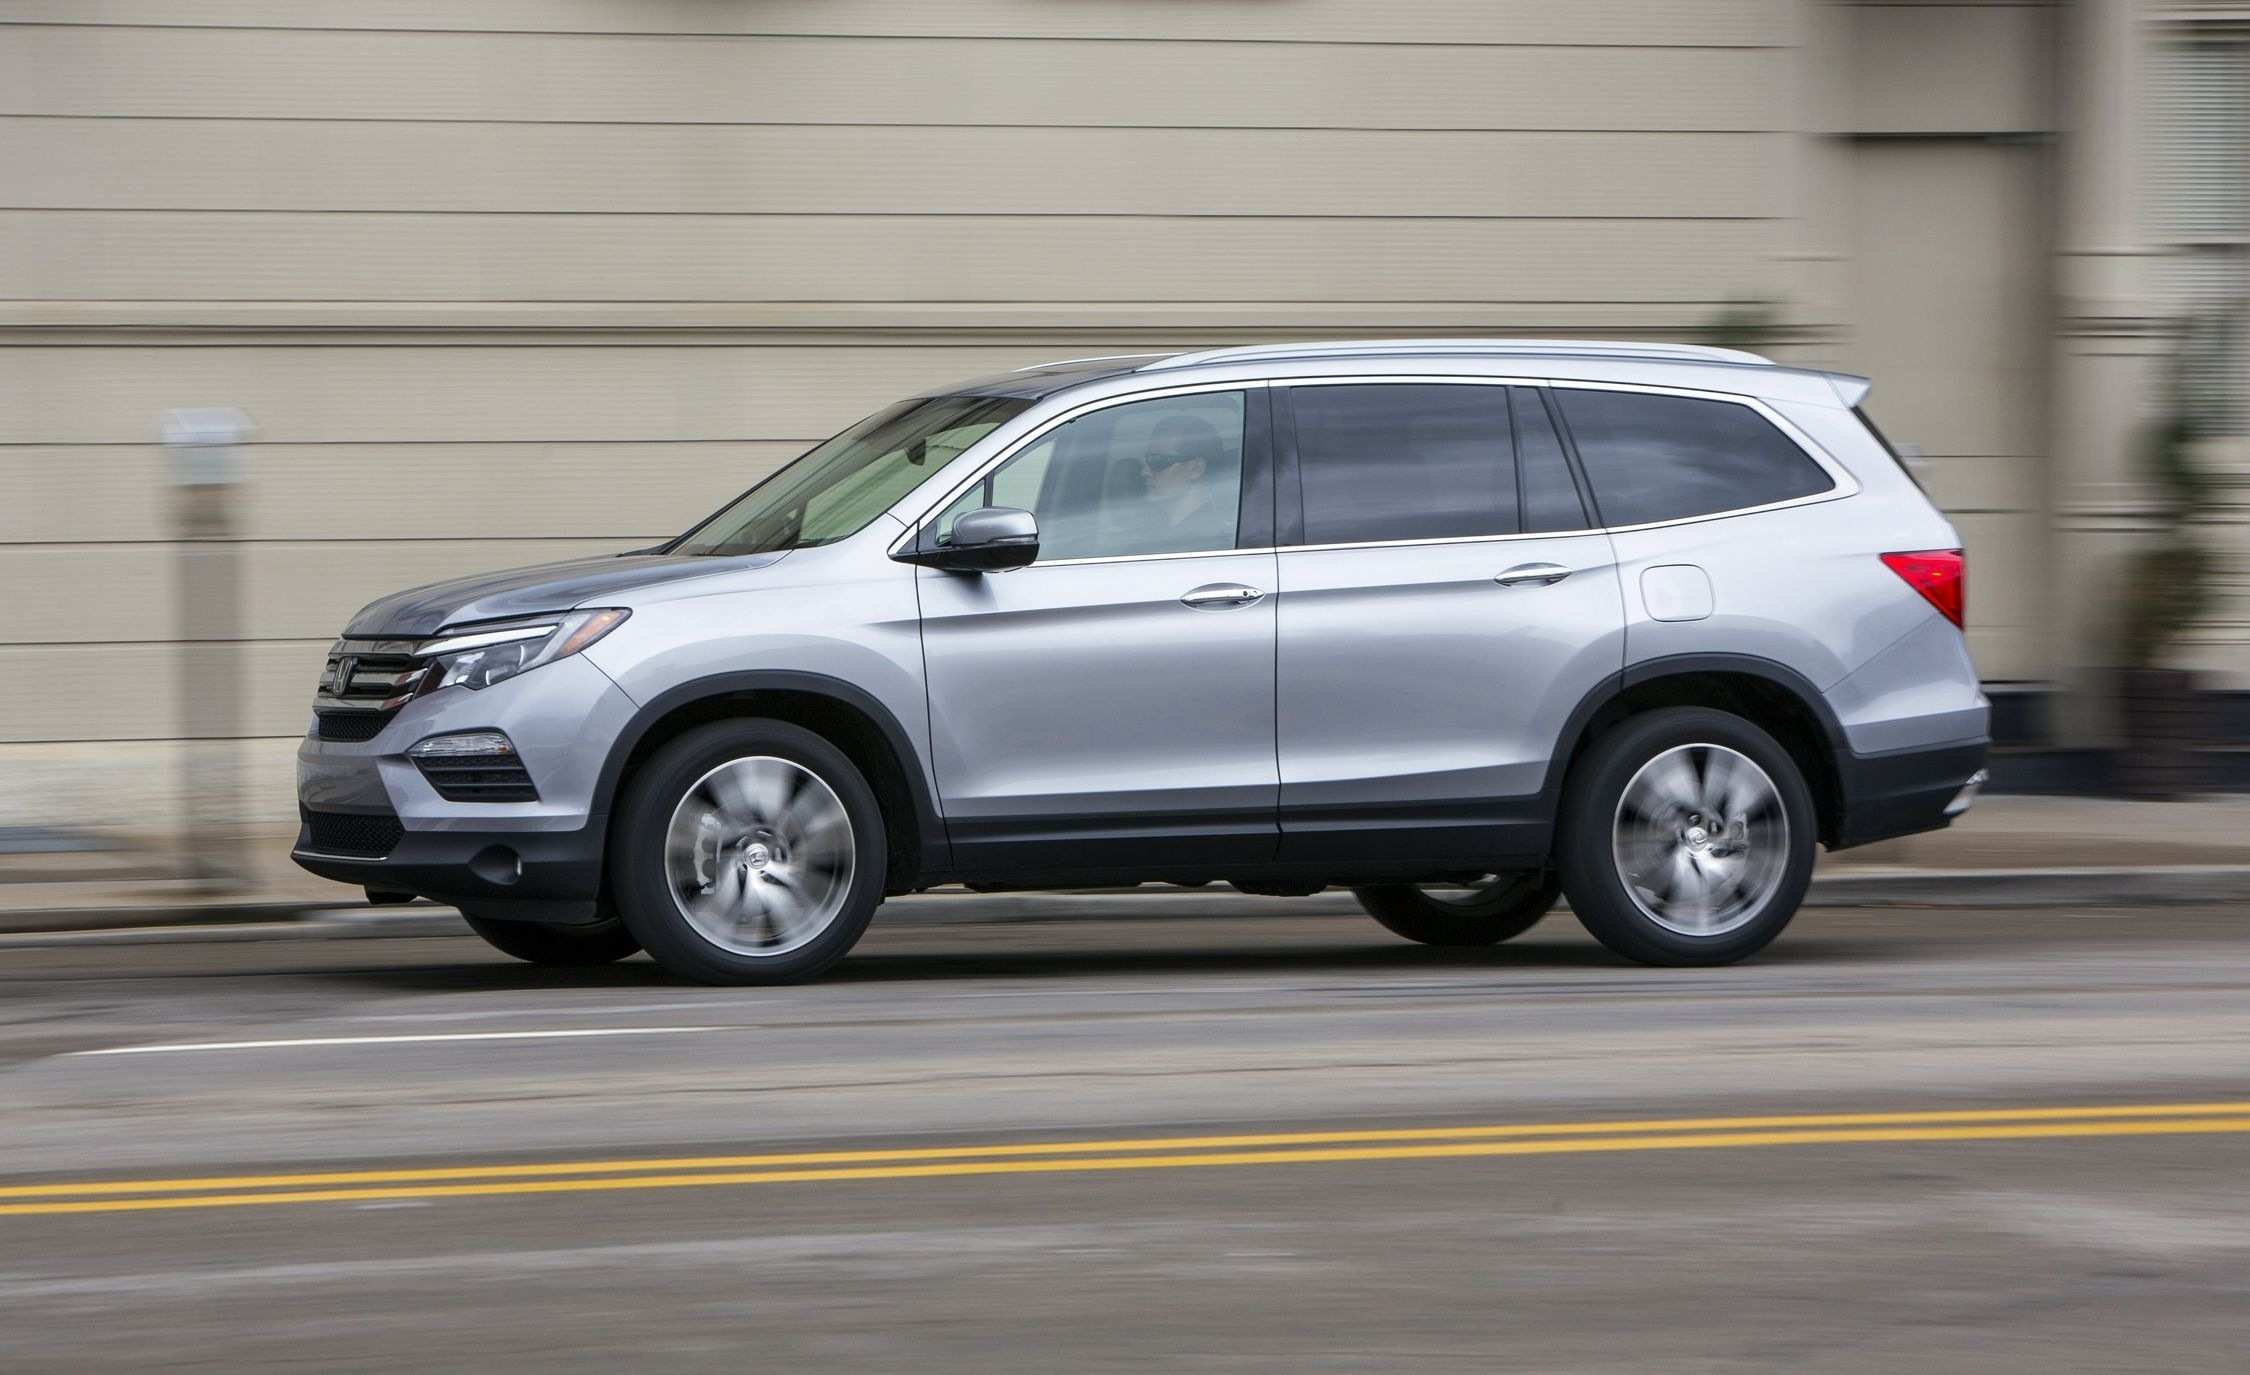 22 Great 2018 Honda Pilot Spy Photos History by 2018 Honda Pilot Spy Photos